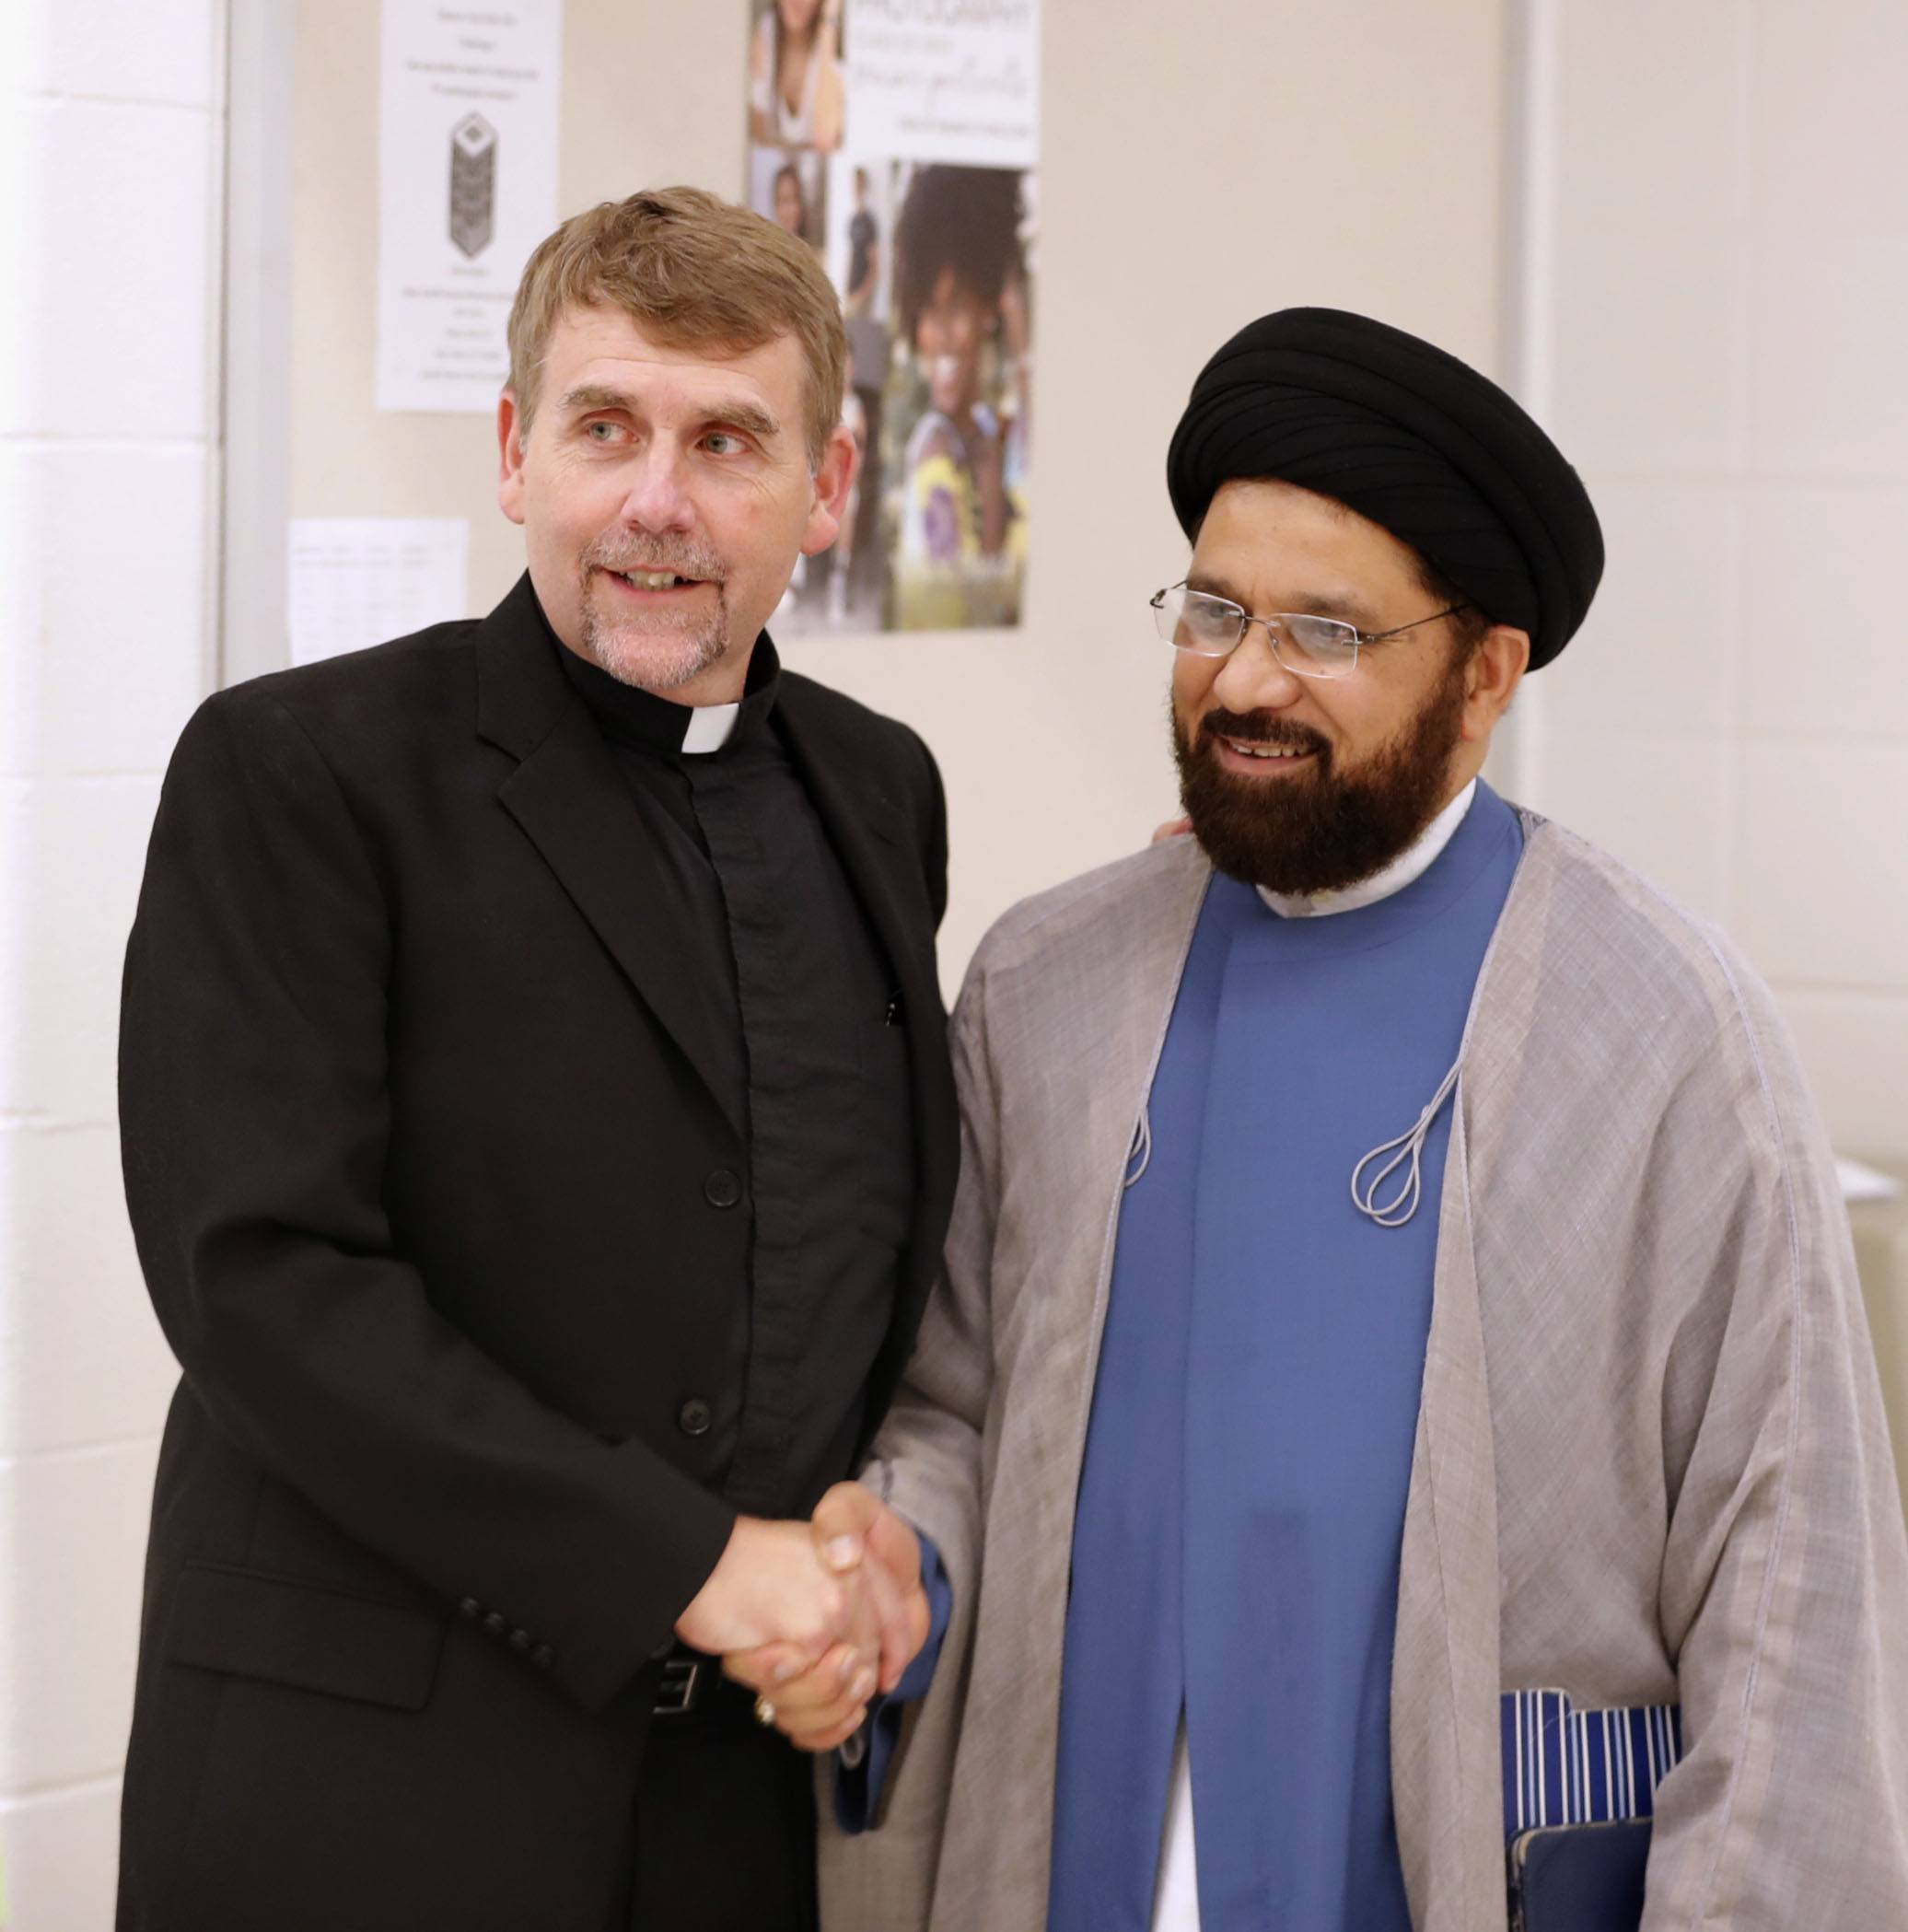 The Rev. Corey Brost, left, of St. Viator High School and Moulana Mehboob Mehdi of the Islamic Education Center in Glendale Heights meet during the Children of Abraham Coalition's seventh annual 9/11 interfaith Potluck For Peace Tuesday at St. Viator in Arlington Heights.